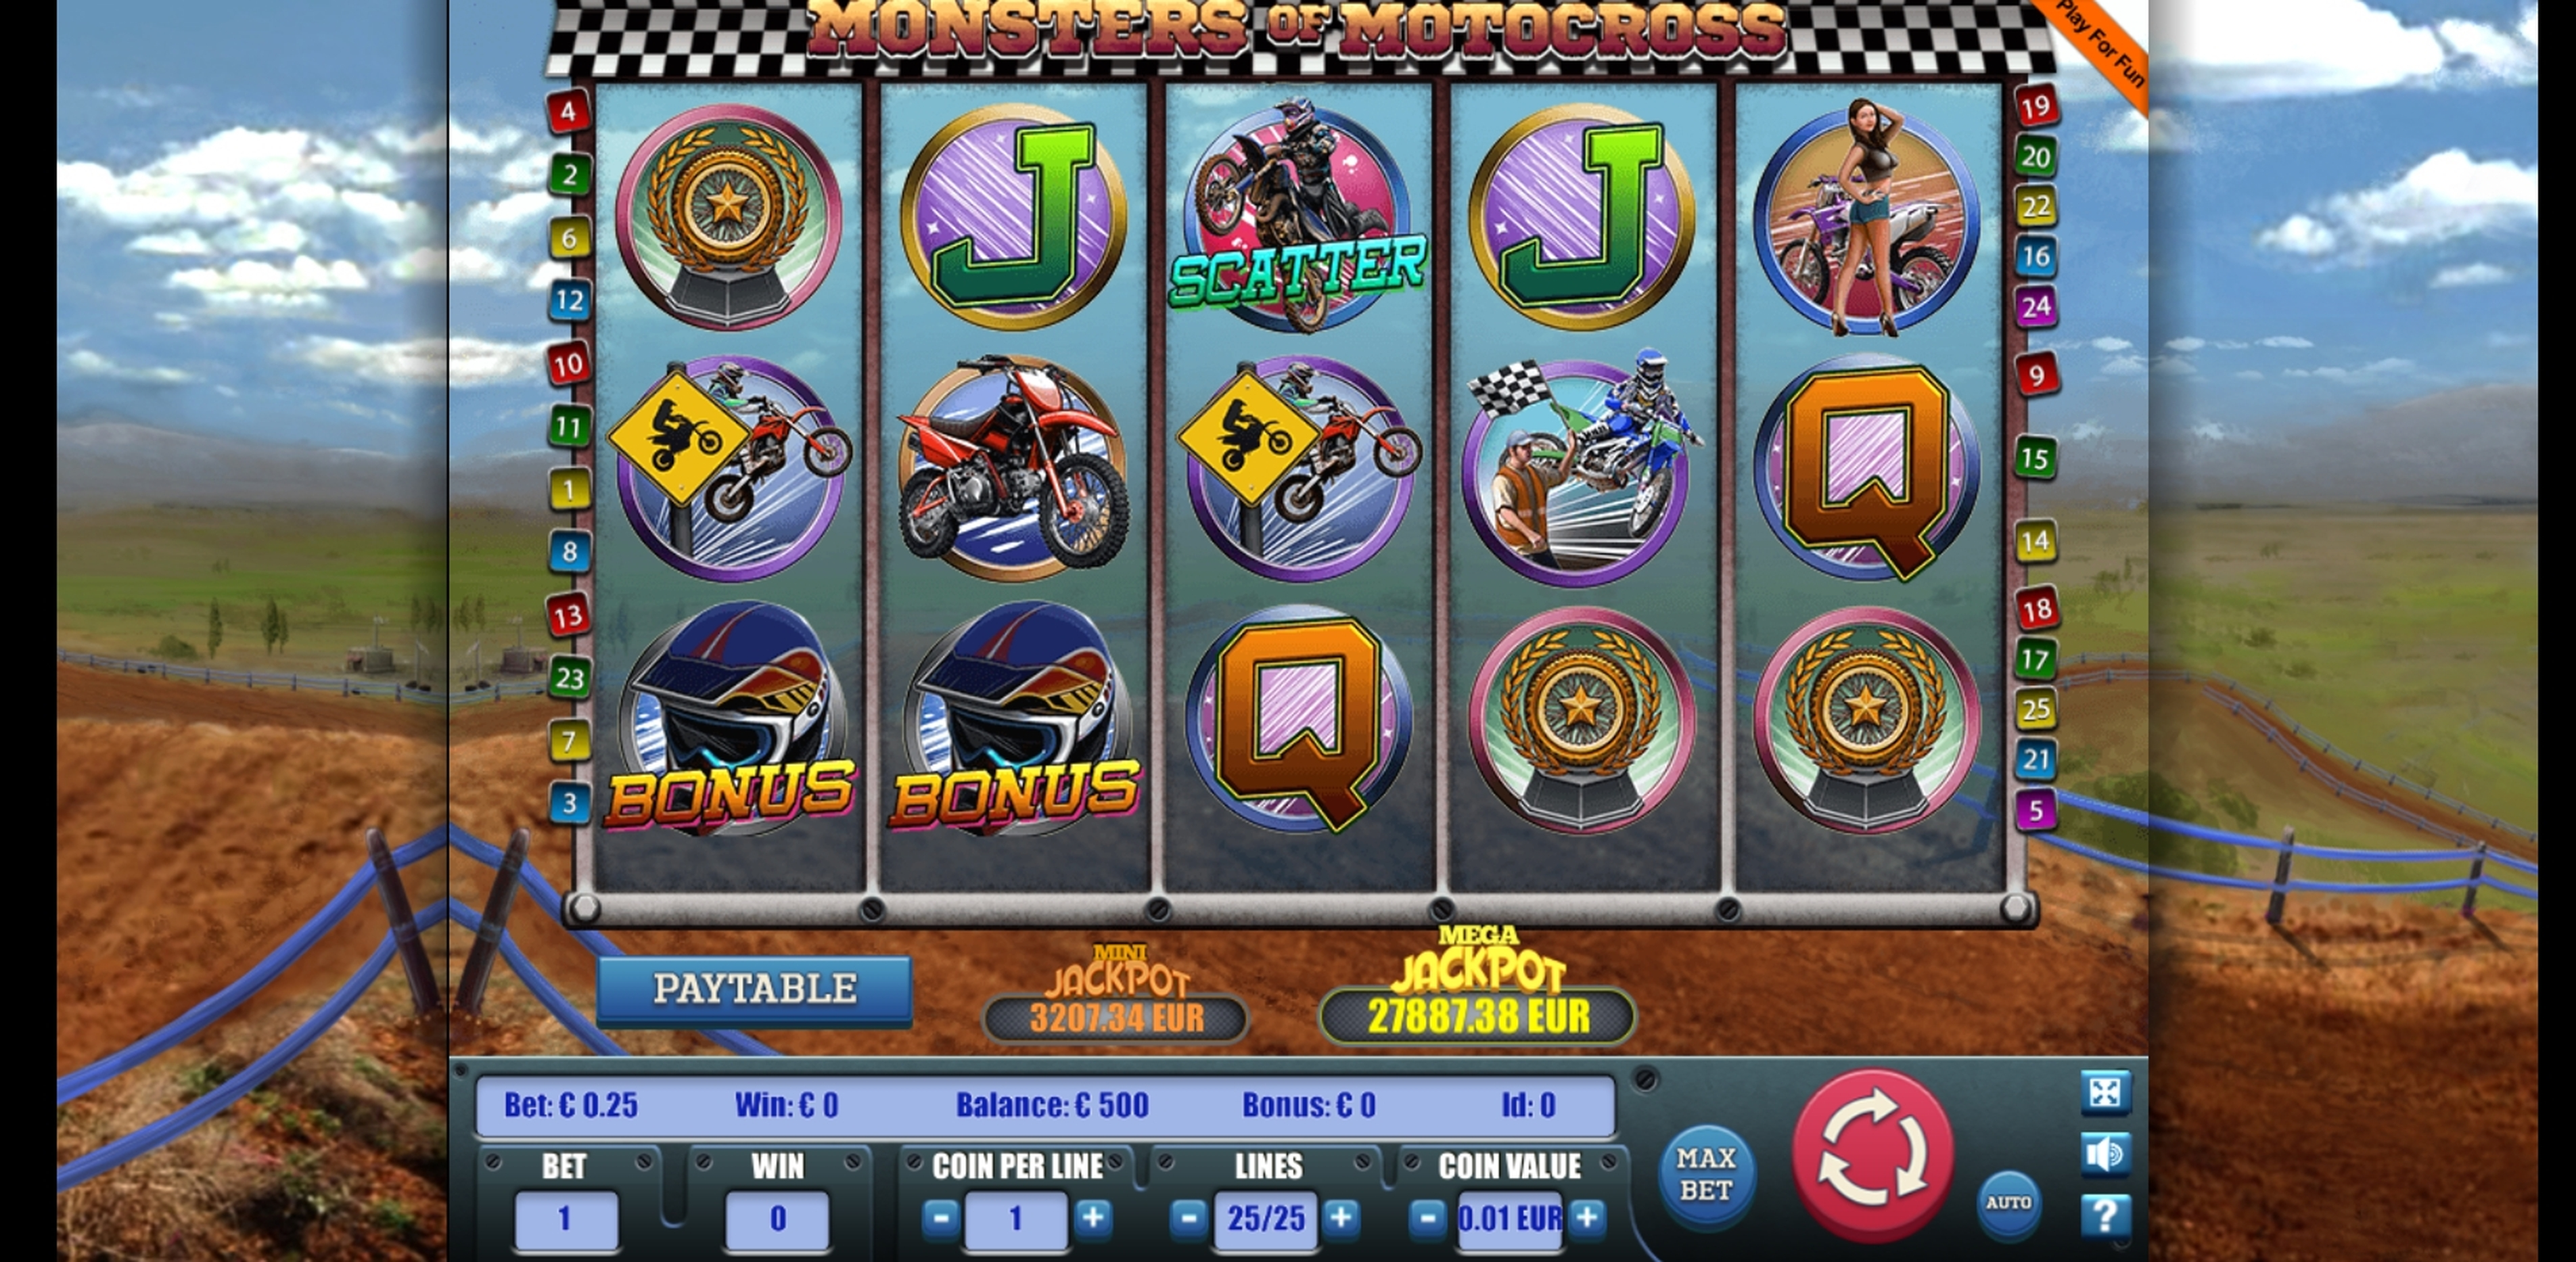 Reels in Monster of motocross Slot Game by Portomaso Gaming